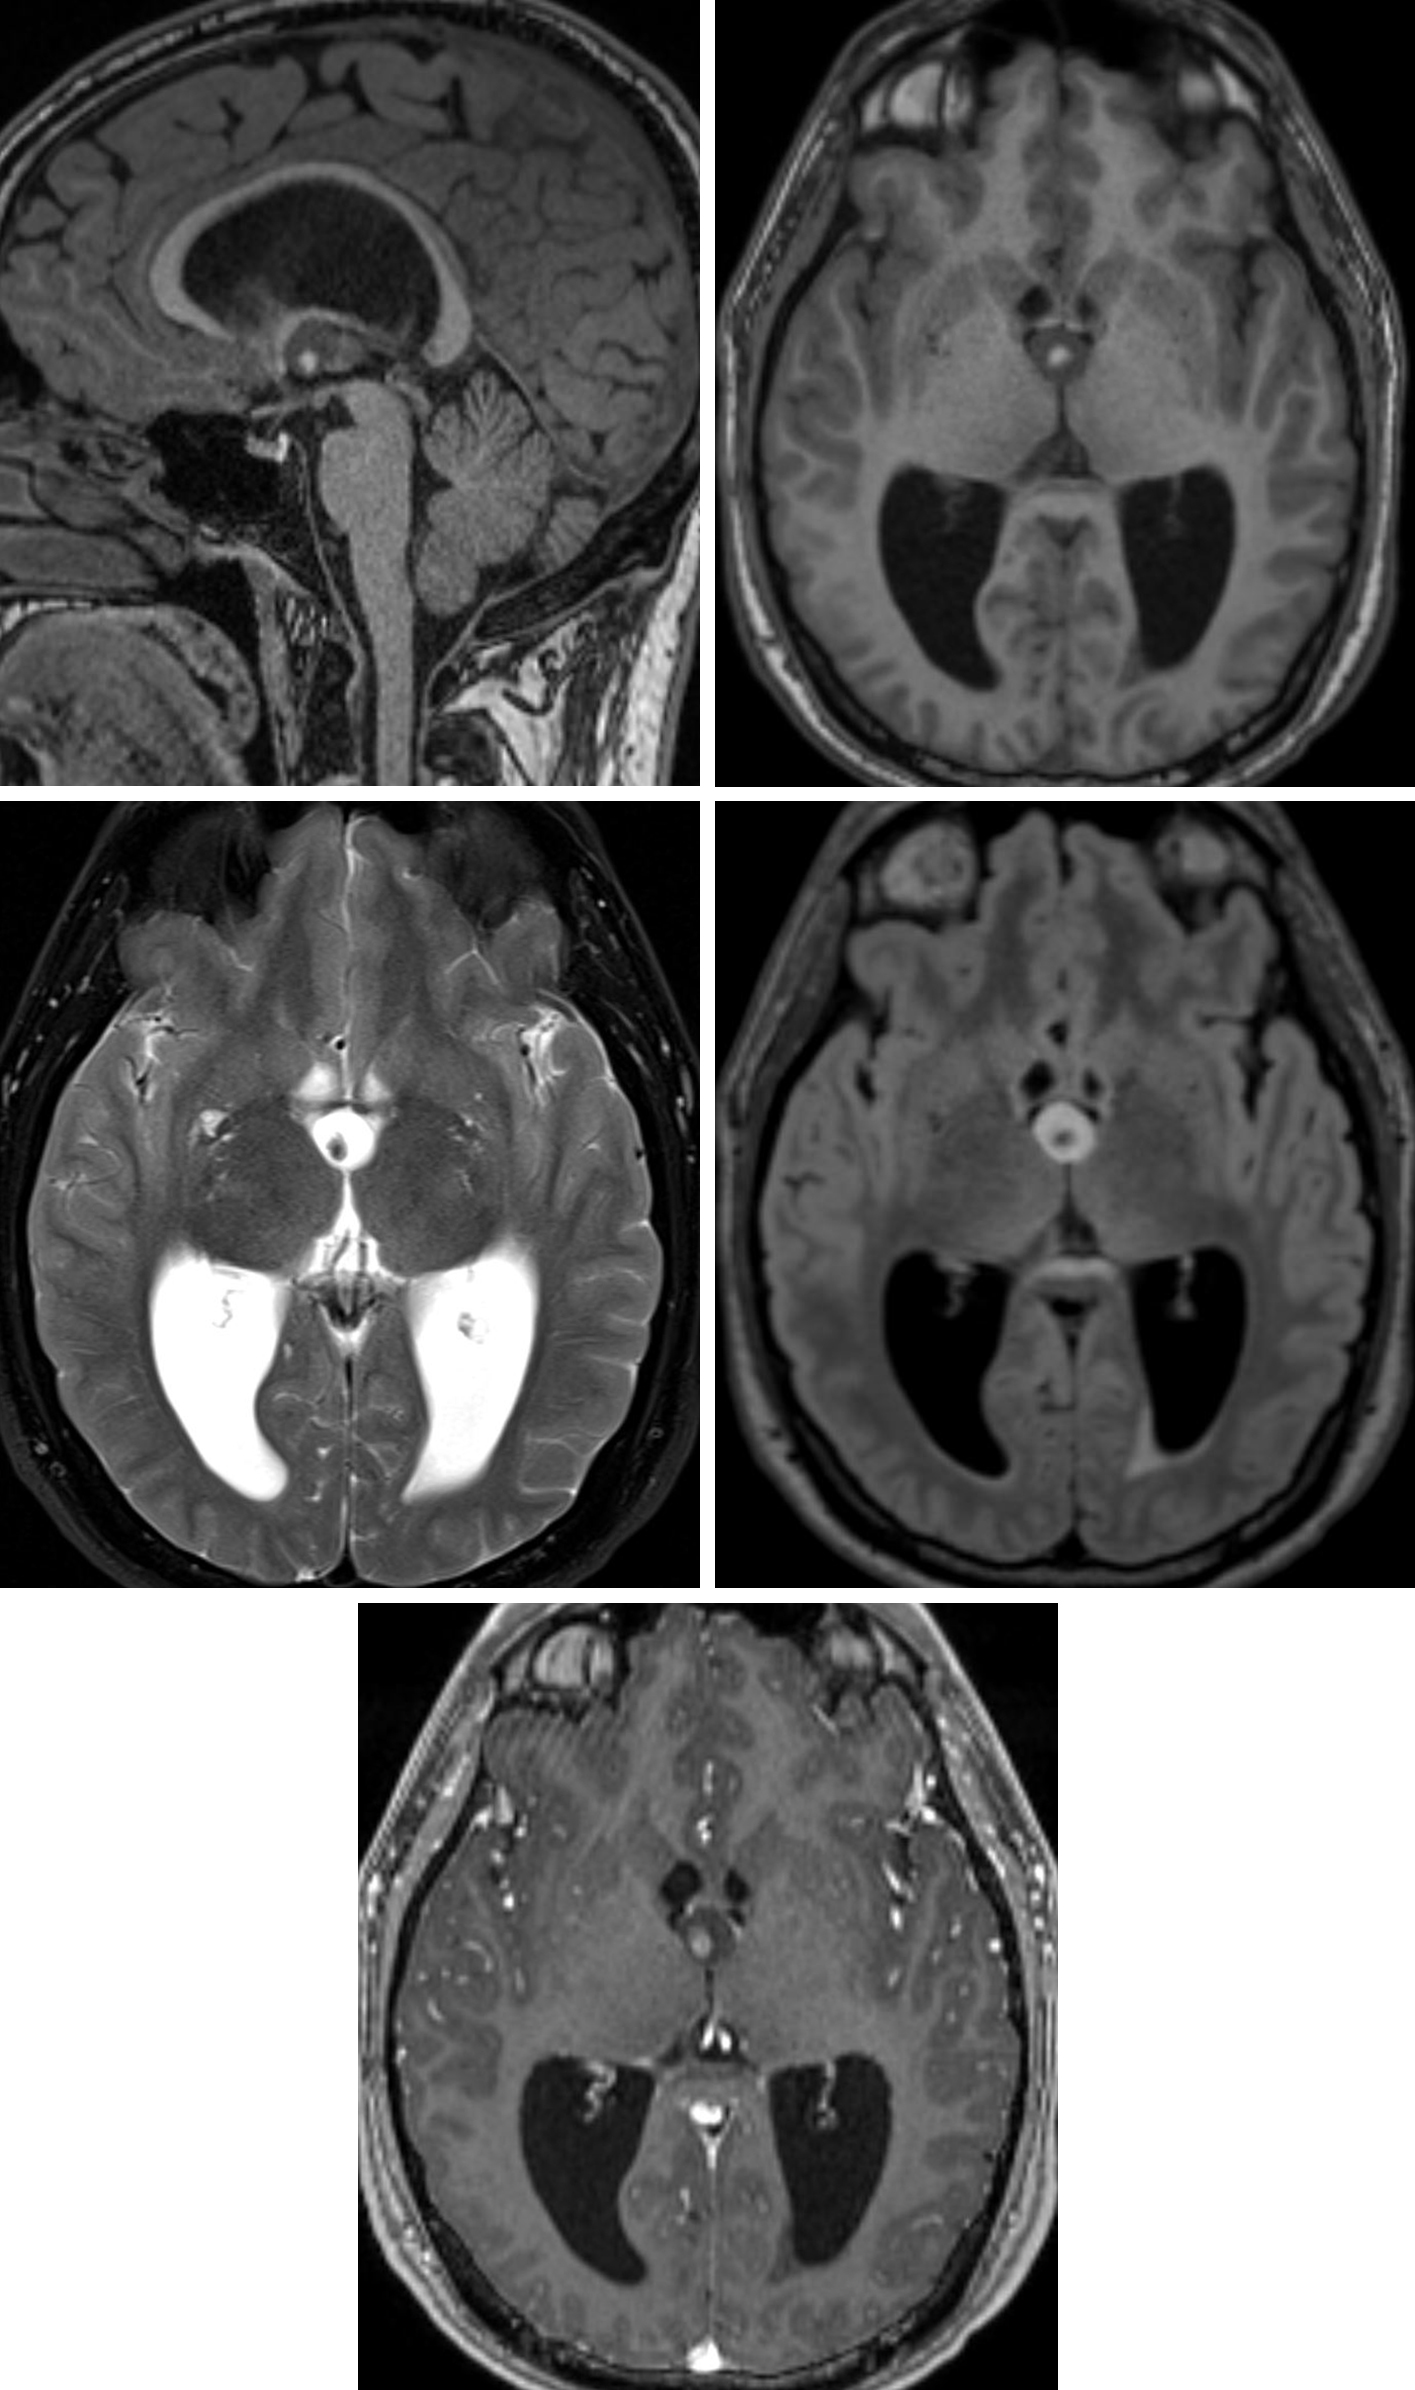 "Figure 2: Sagittal (top left) and axial (top right) T1-weighted images demonstrate a low-signal-intensity colloid cyst at the foramen of Monro. The cyst has a central T1 hyperintense focus that represents inspissated proteinaceous debris. (Middle Left) The cyst is bright on T2 with low-signal-intensity proteinaceous debris that is sometimes referred to as the ""black hole"" effect. (Middle Right) The cyst remains predominantly hyperintense on FLAIR imaging, indicating its content dissimilarity from CSF. (Bottom) This cyst has no appreciable enhancement on postcontrast imaging, with its only hyperintense component being the intrinsically T1 hyperintense debris centrally. Obstructive hydrocephalus is present on these images, a known common risk of colloid cyst due to their position. Incidentally, the internal proteinaceous debris is mobile in this cyst, indicated by its change from a central position on the earlier sequences (top left, top right, and middle right) to a right posterior position on the later sequences (middle left and bottom)."